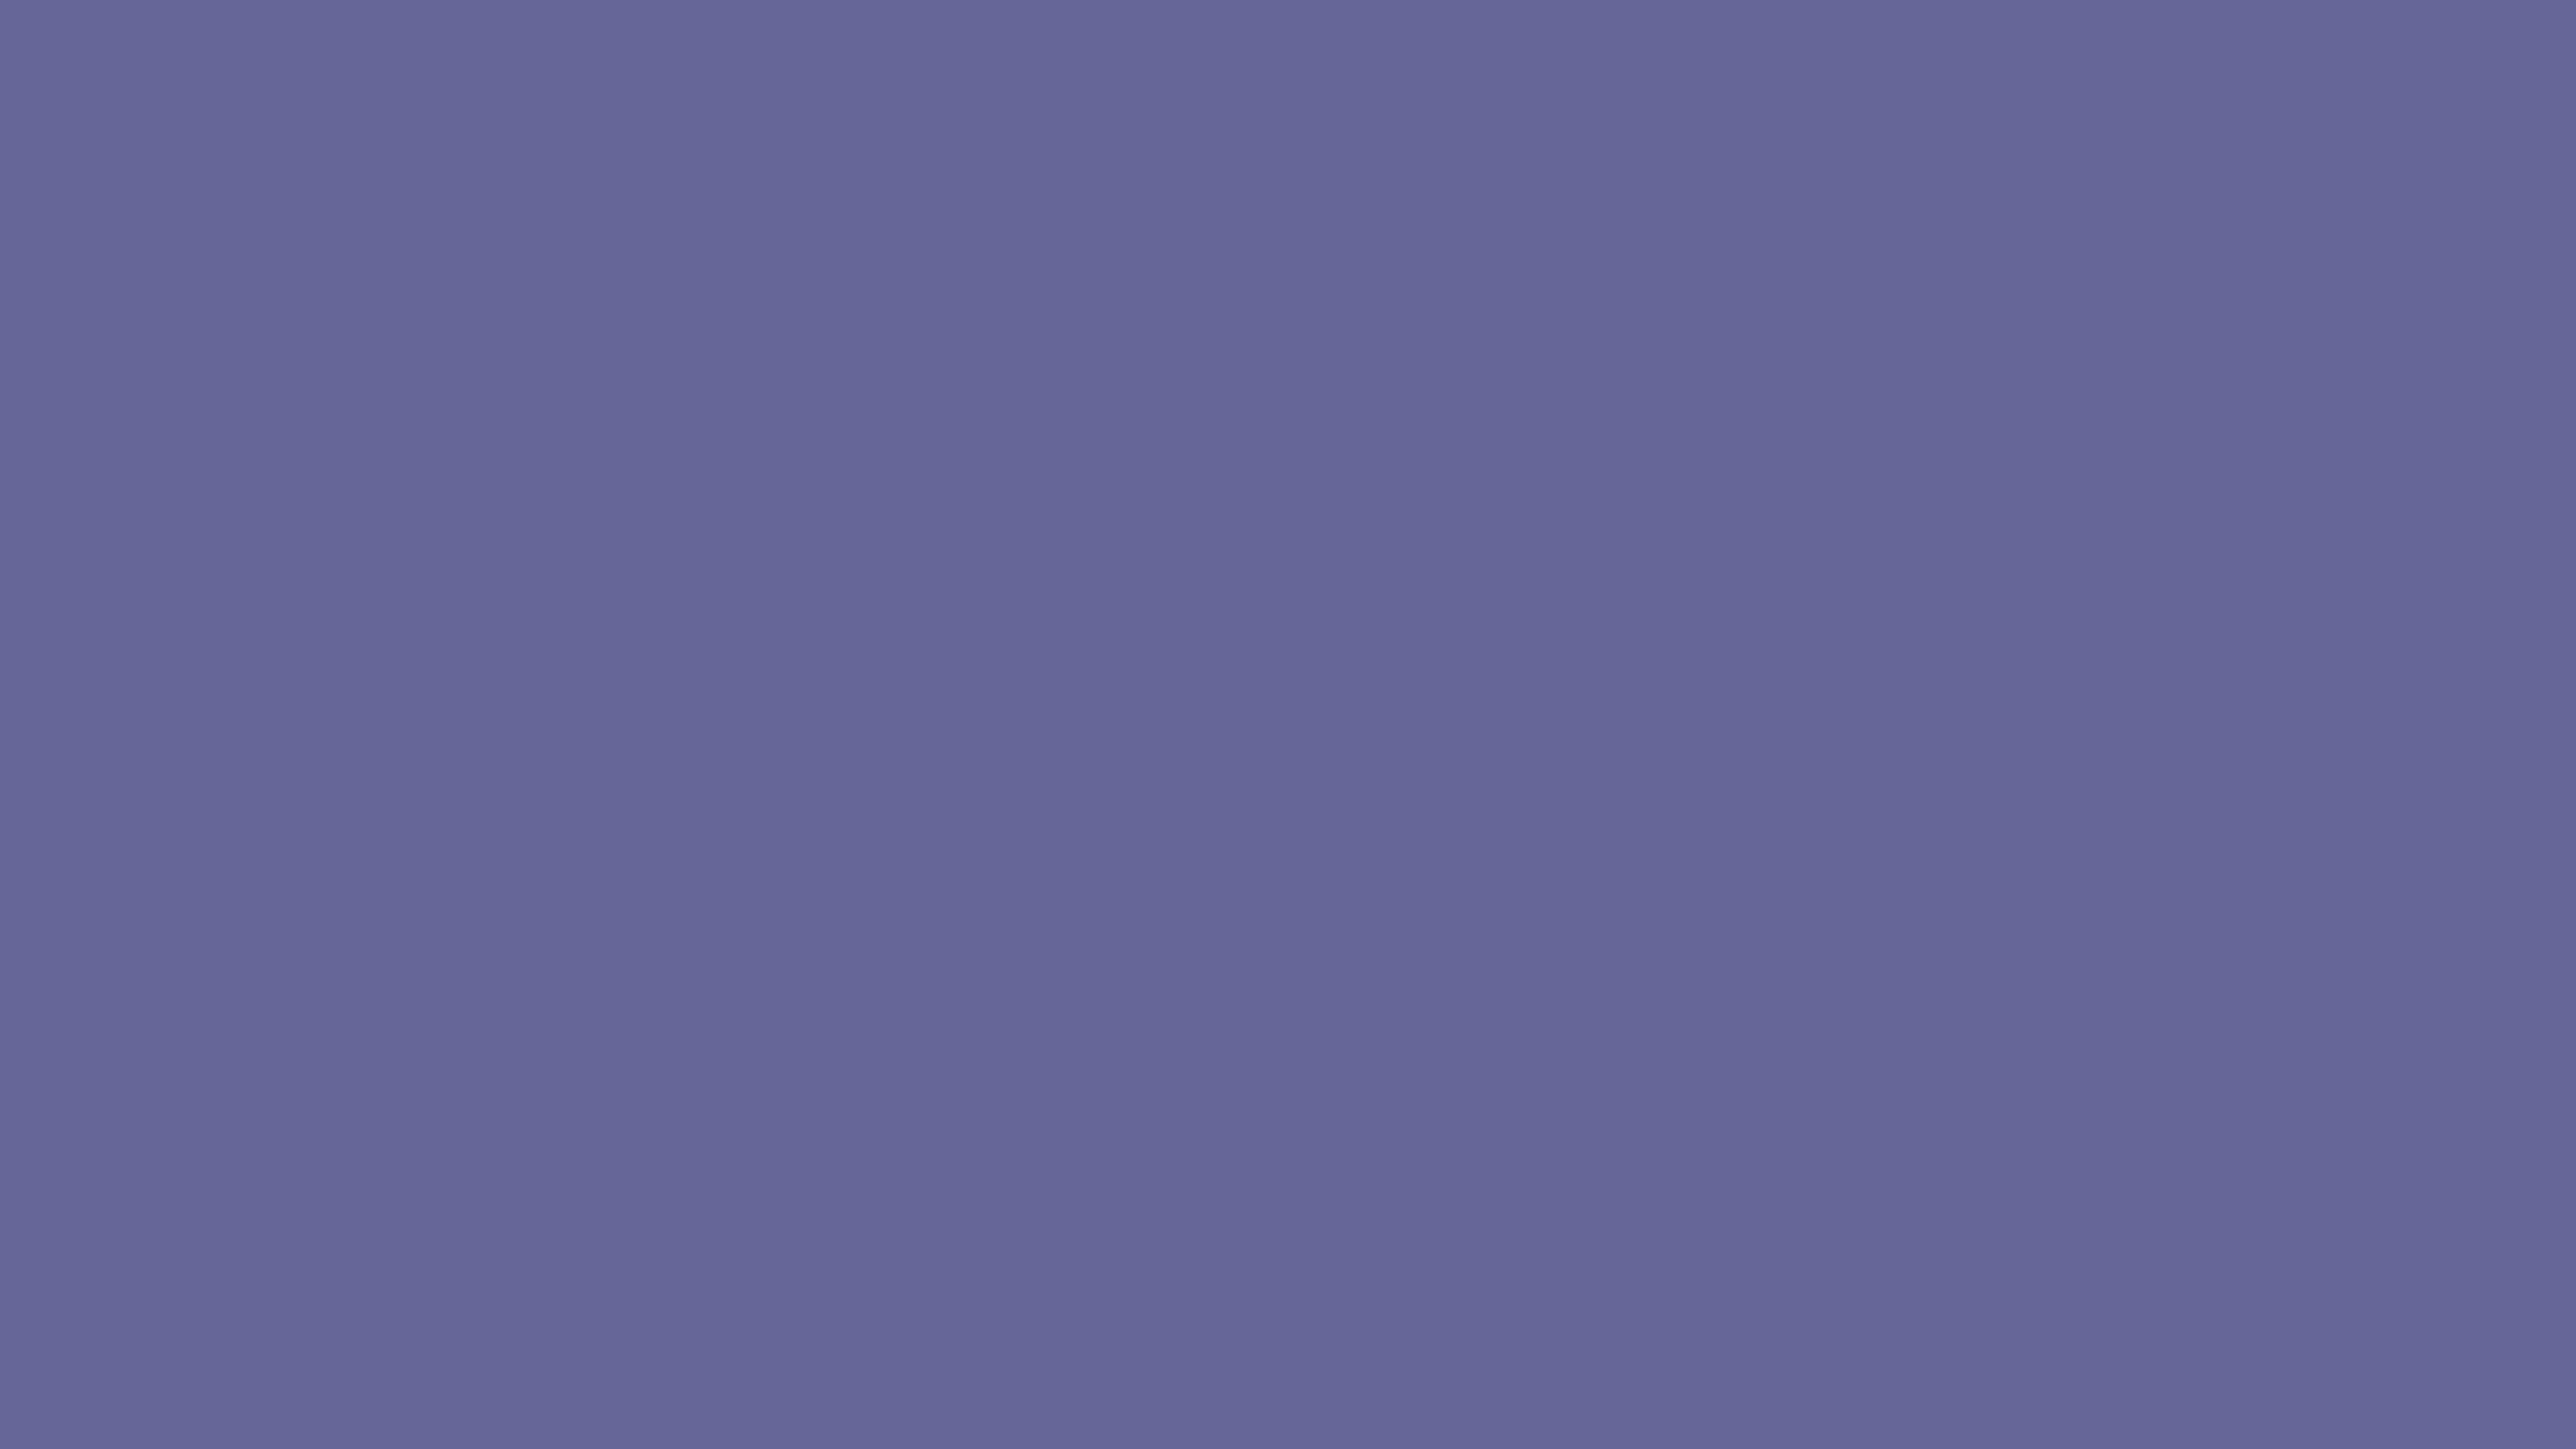 5120x2880 Dark Blue-gray Solid Color Background